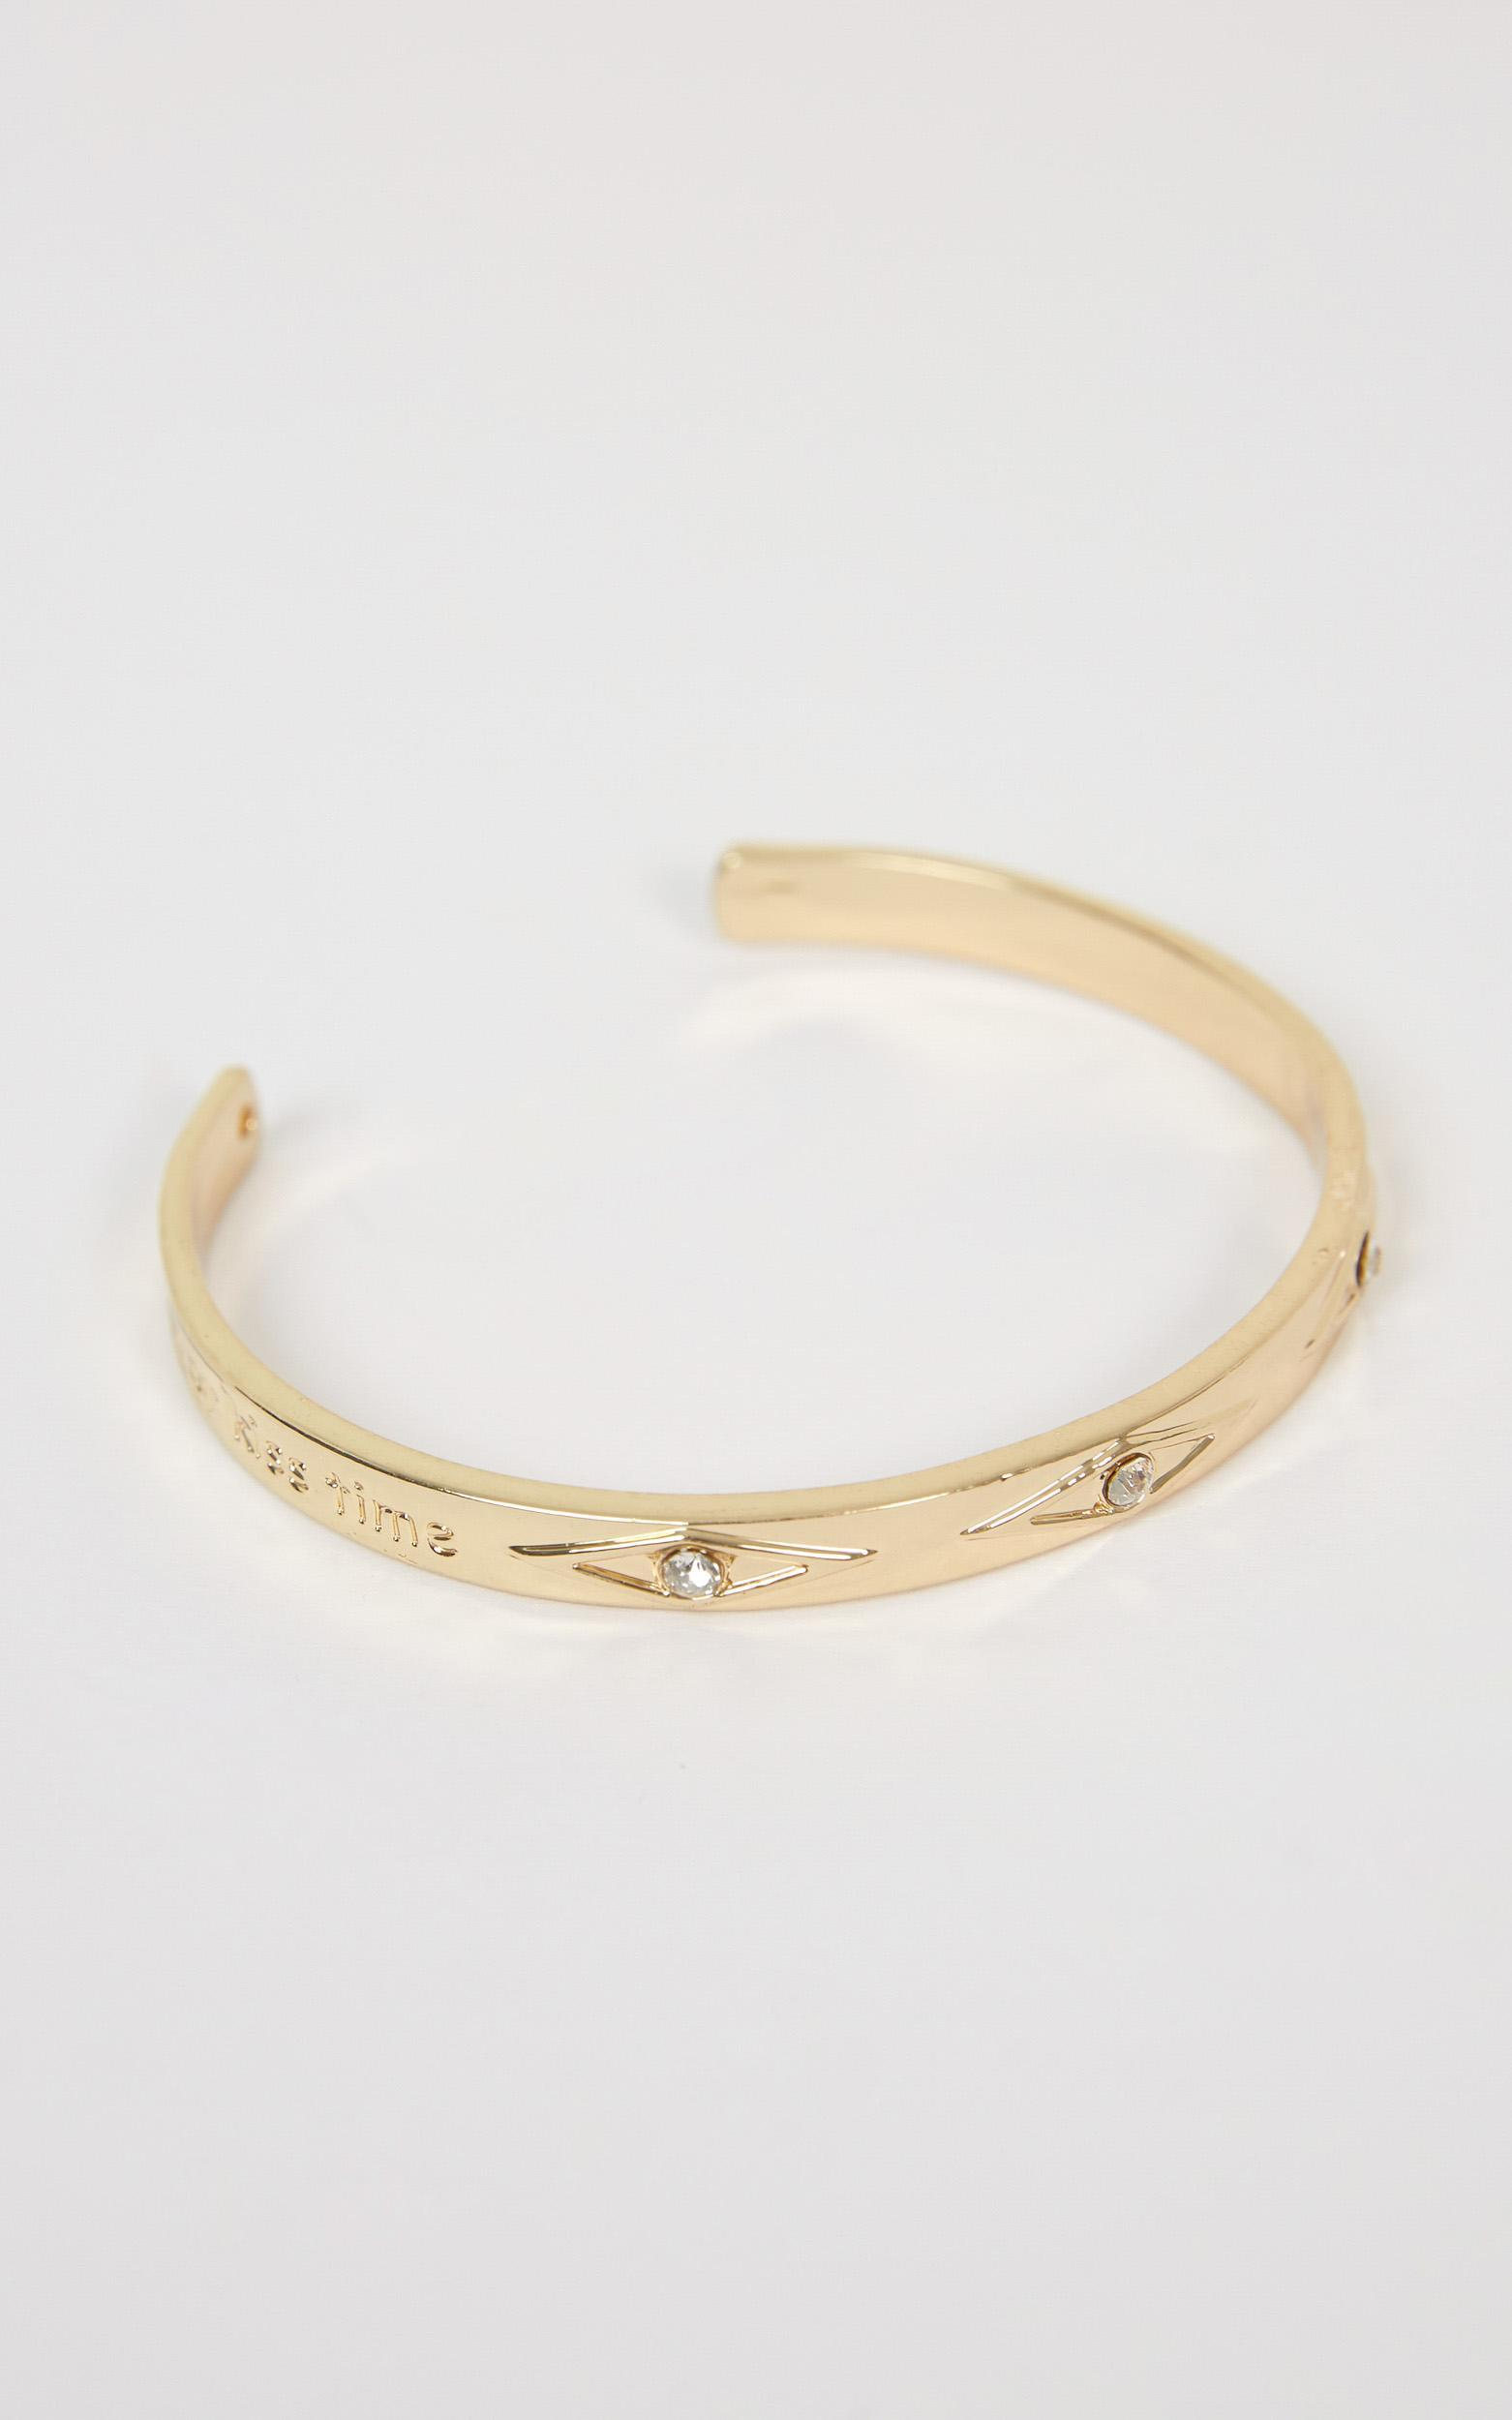 Queen Of The Castle Bangle In Gold, , hi-res image number null